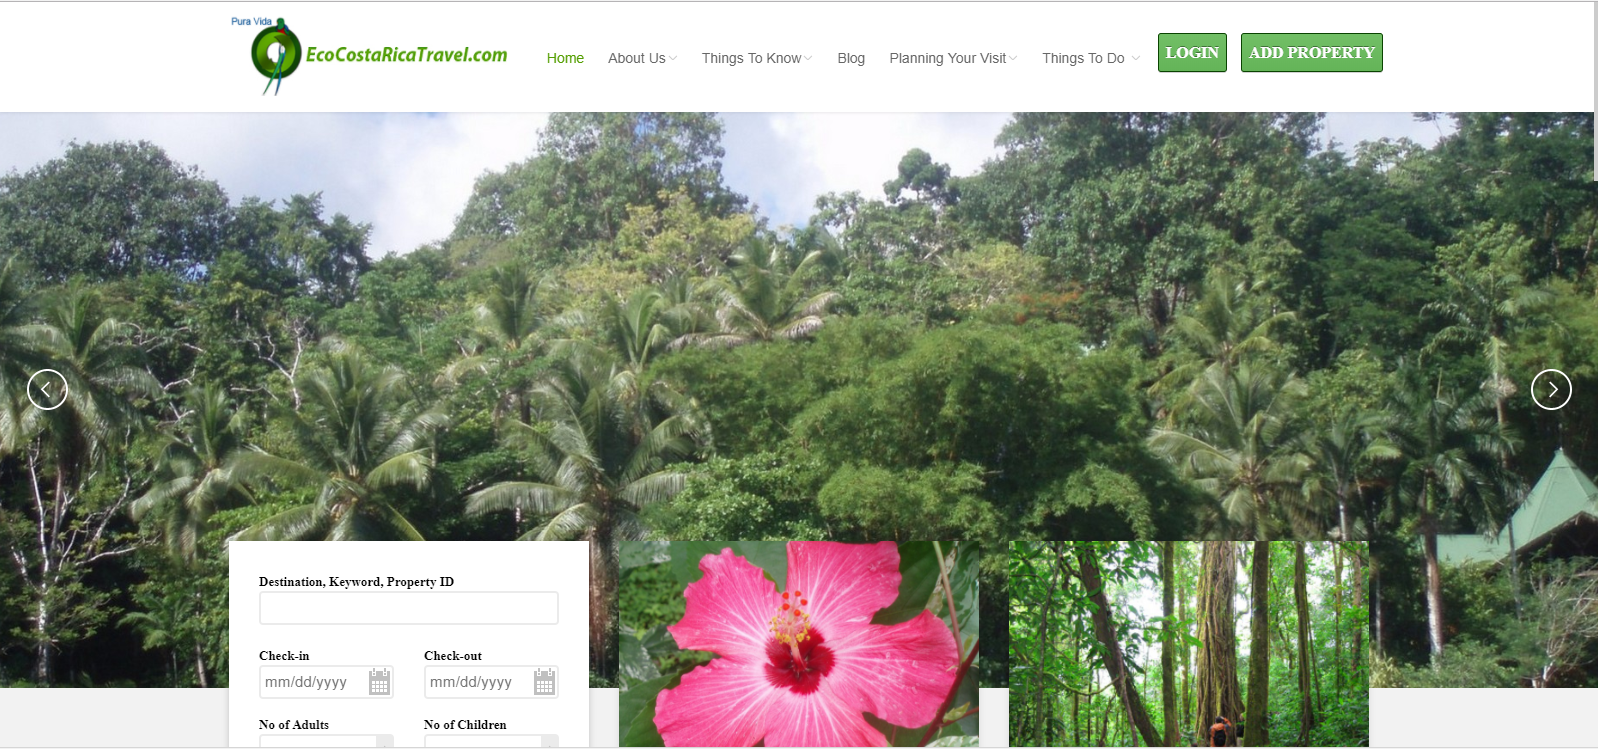 EcoCostaRica Travel website